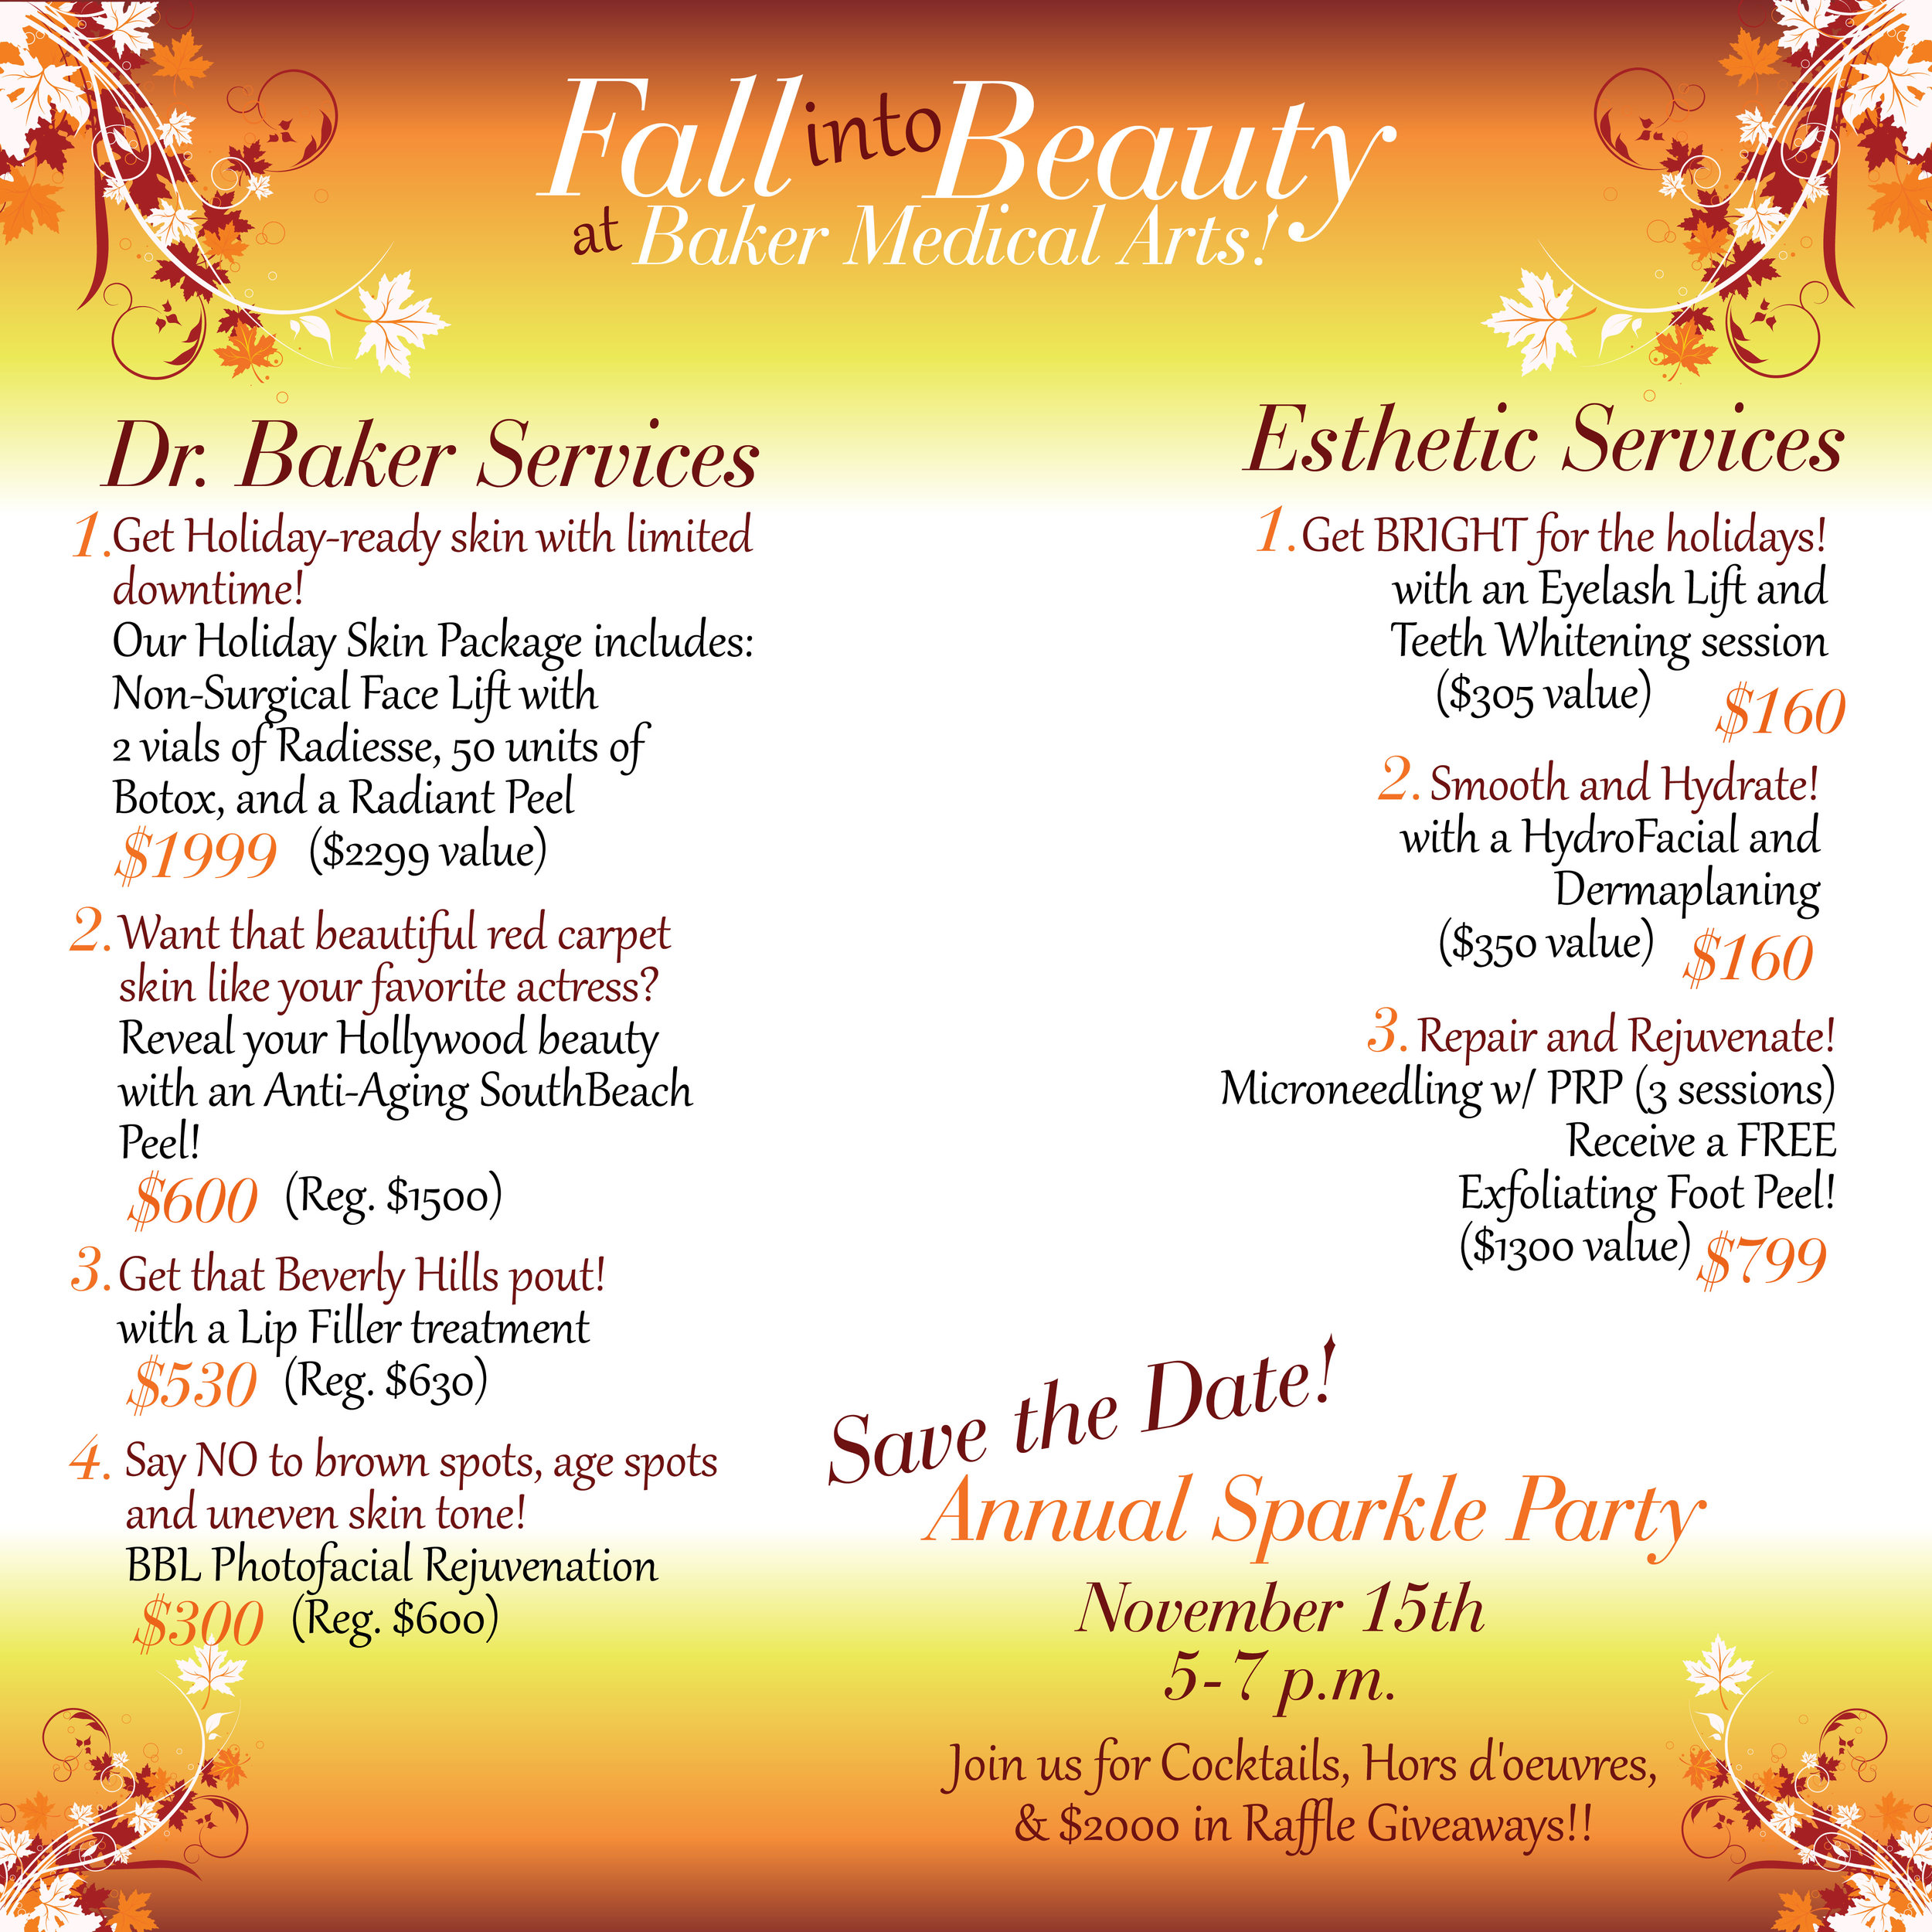 Fall into Beauty at Baker